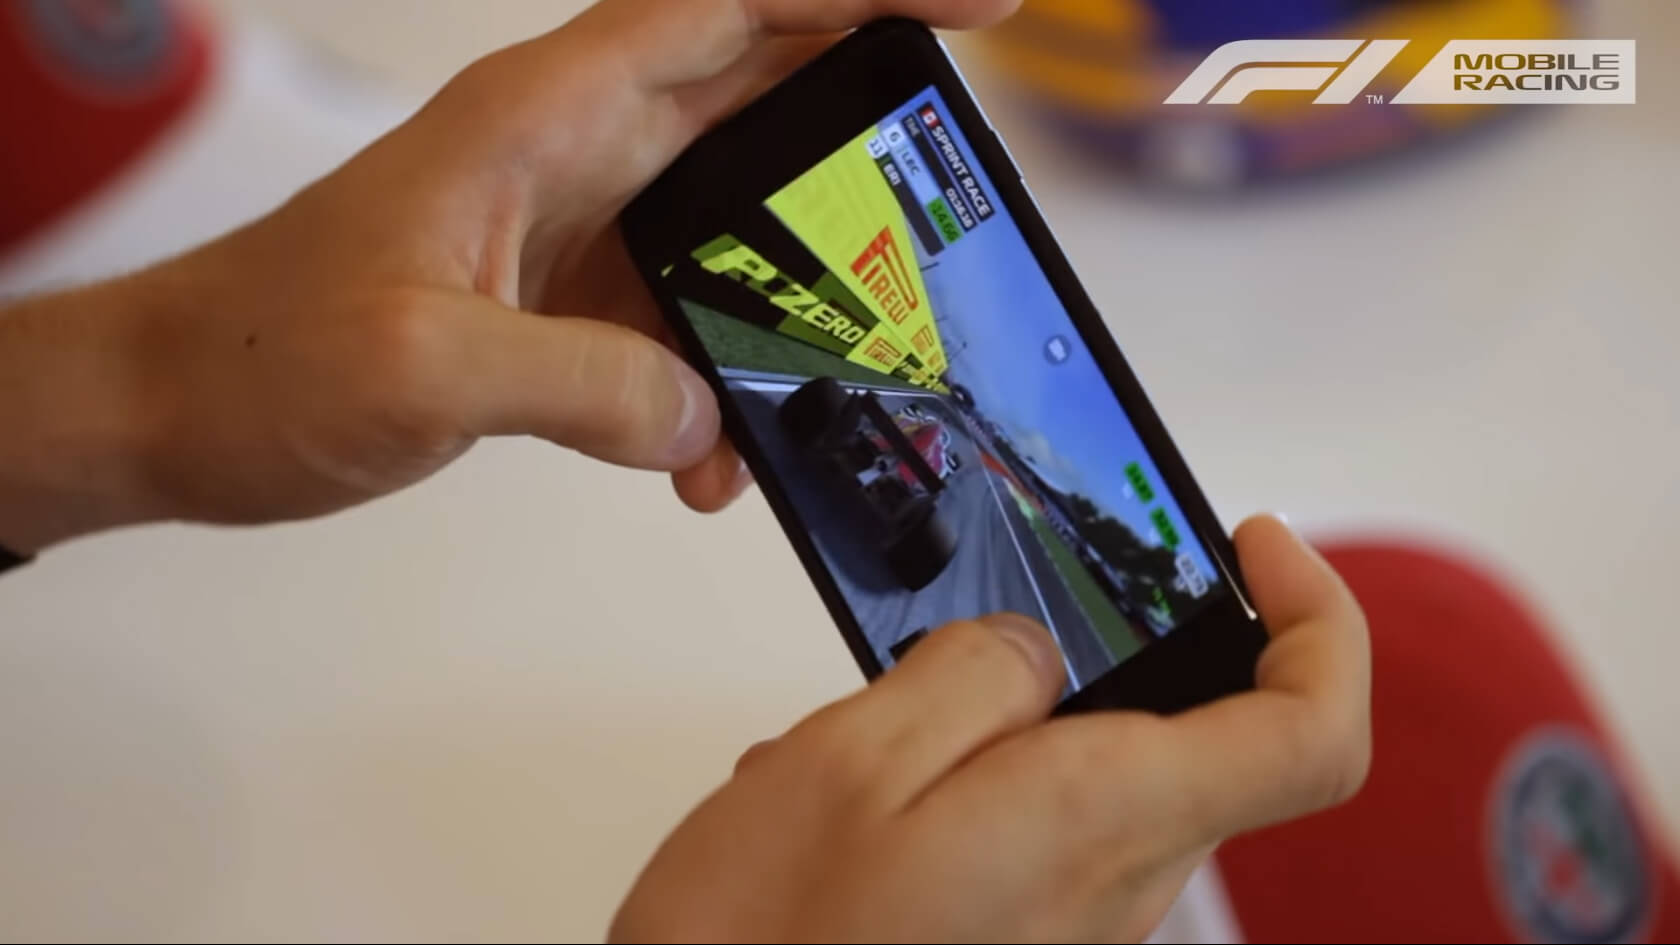 The F1 2019 Mobile Games Will Not Be Developed by Codemasters